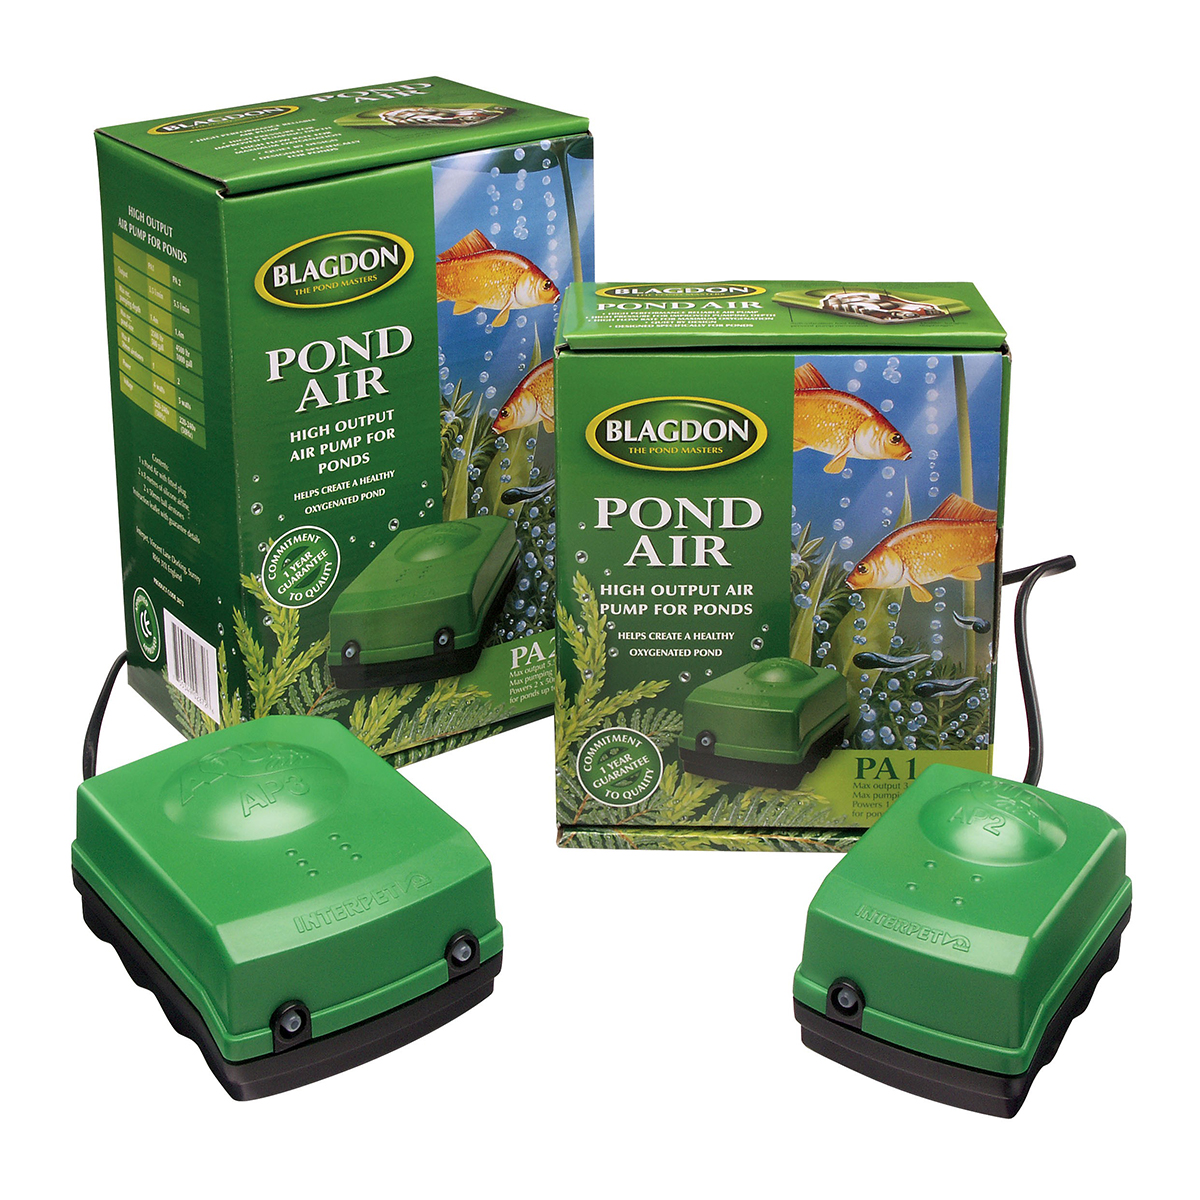 Blagdon pond air pump systems for Koi pond pump system